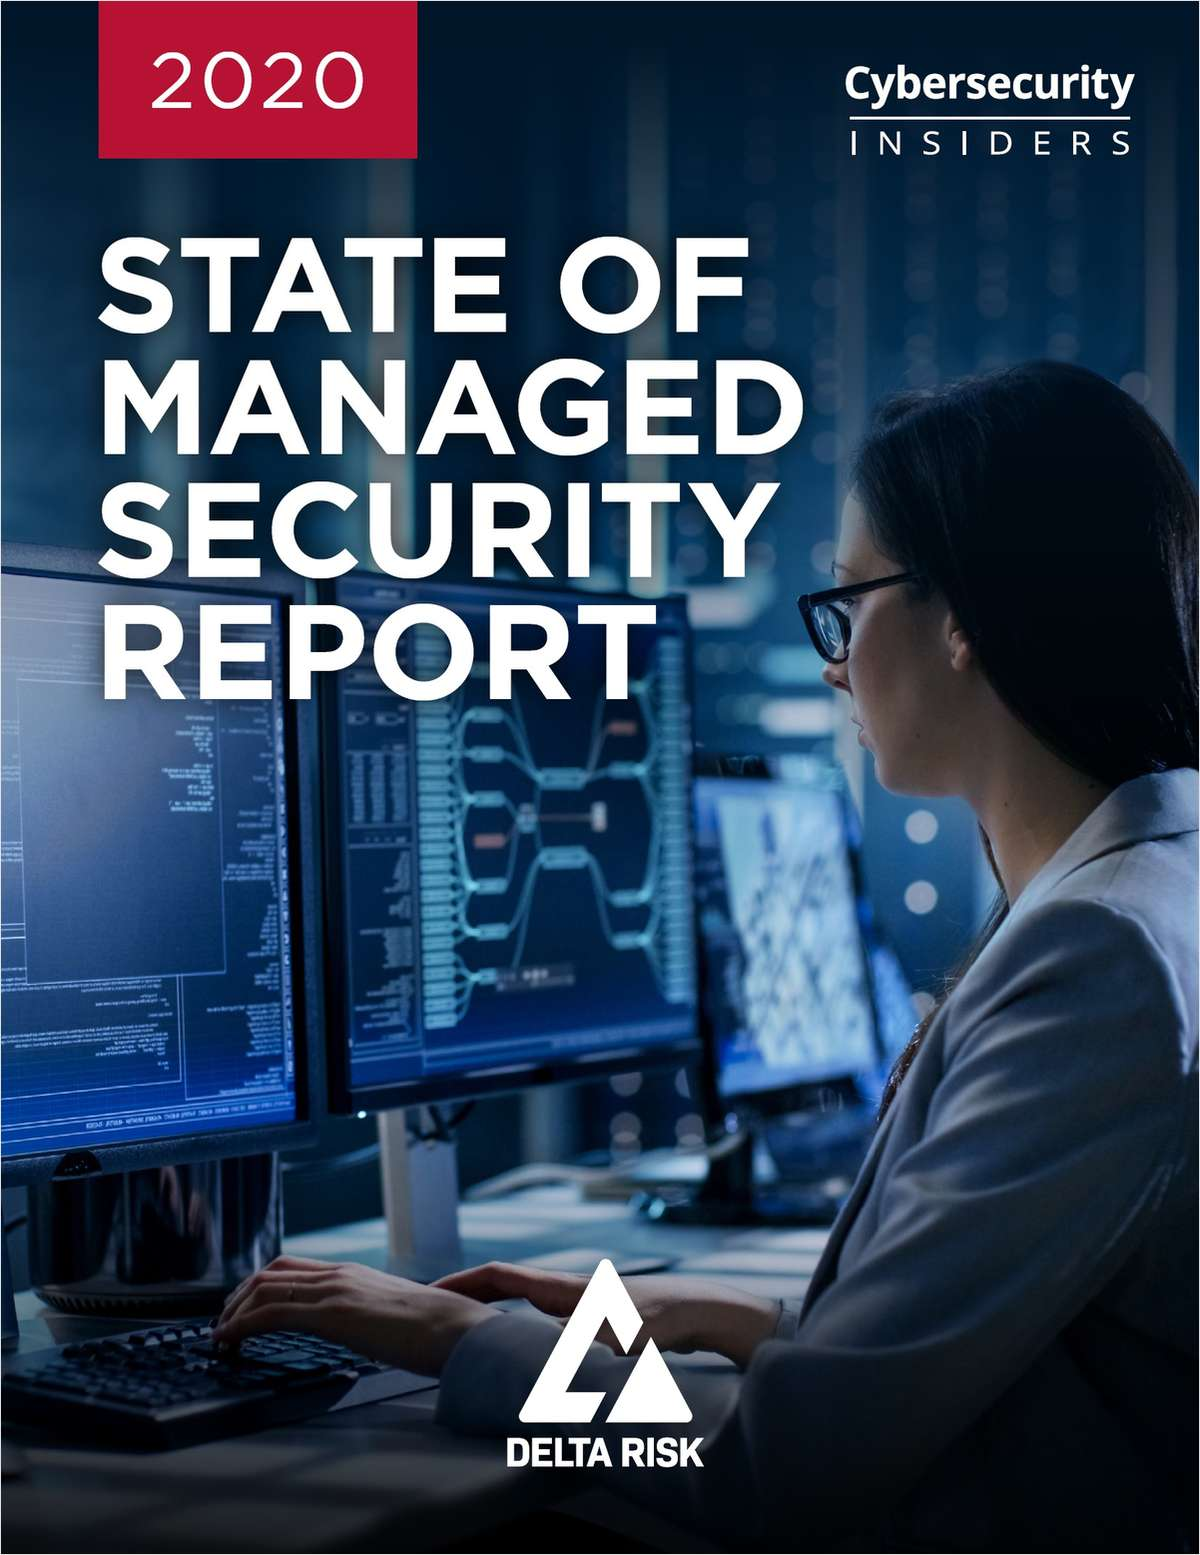 2020 State of Managed Security